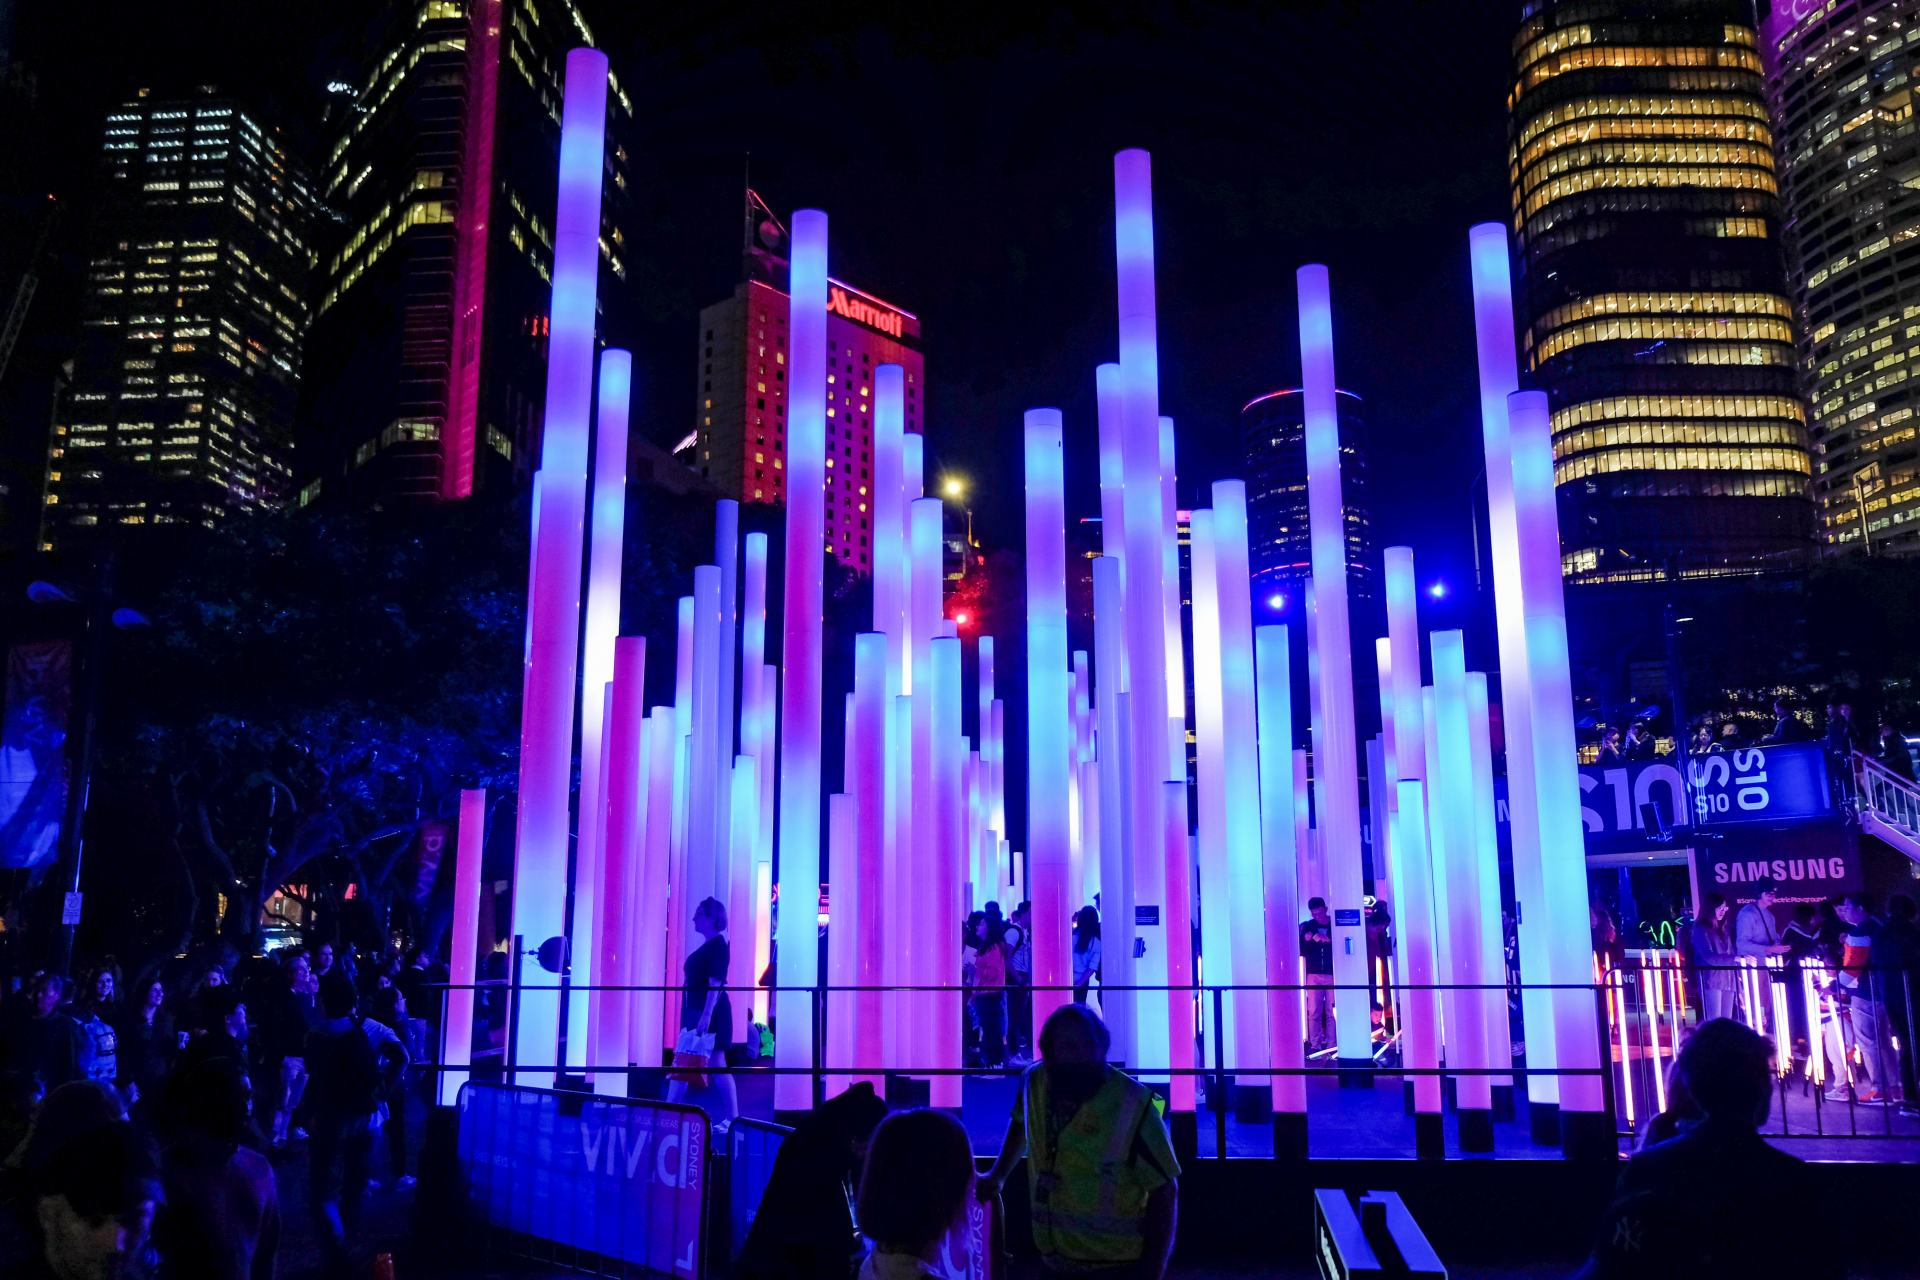 samsung electric playground vivid sydney